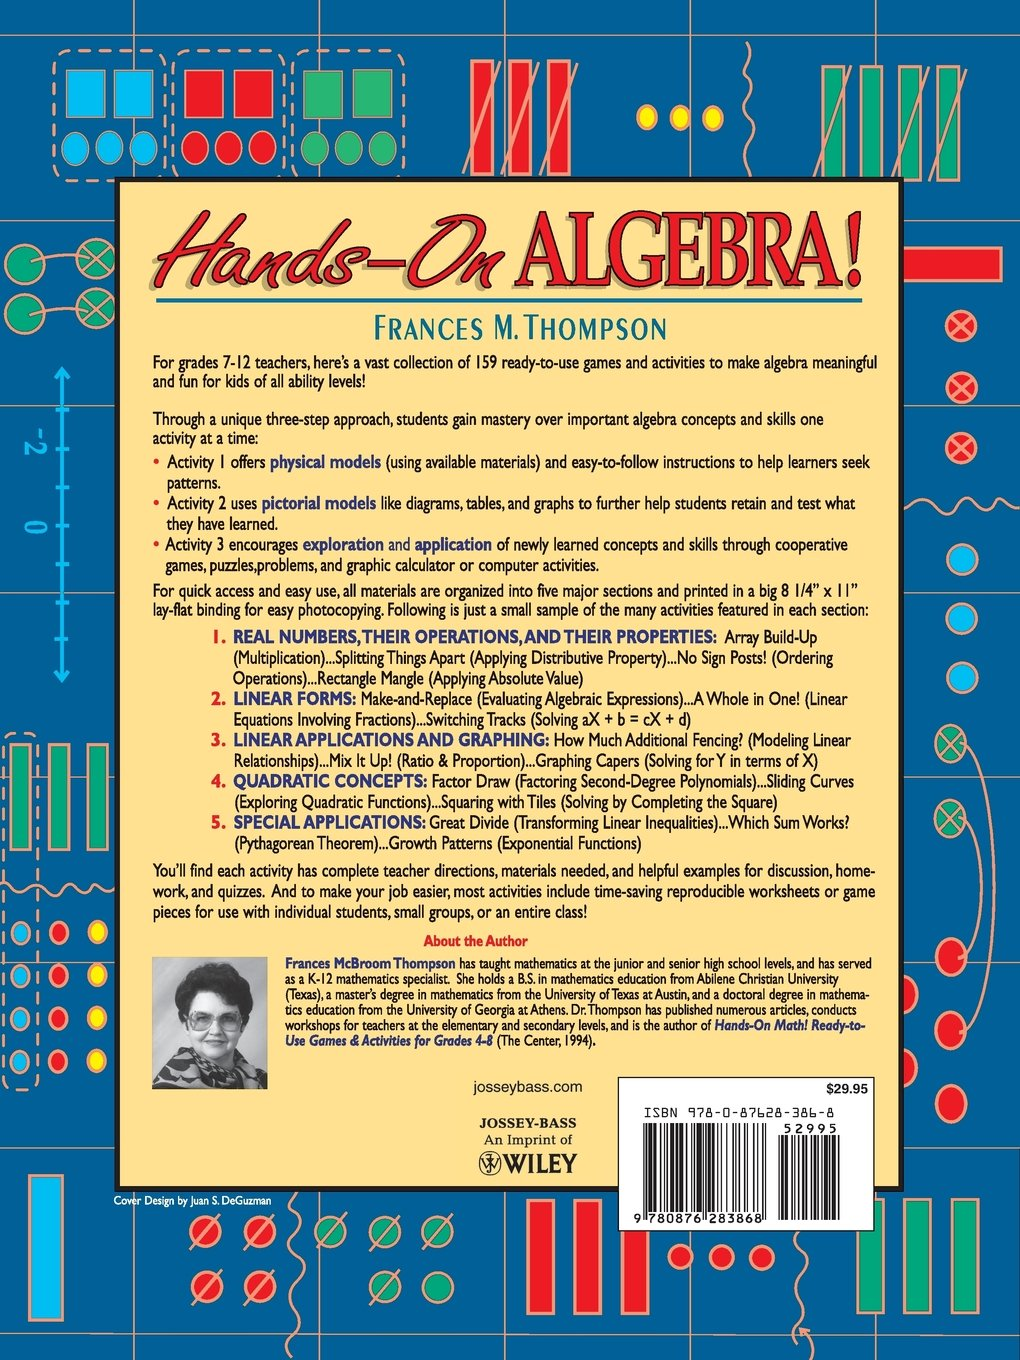 Hands-On Algebra: Ready-To-Use Games & Activities for Grades 7-12: Frances  McBroom Thompson Ed.D.: 9780876283868: Amazon.com: Books